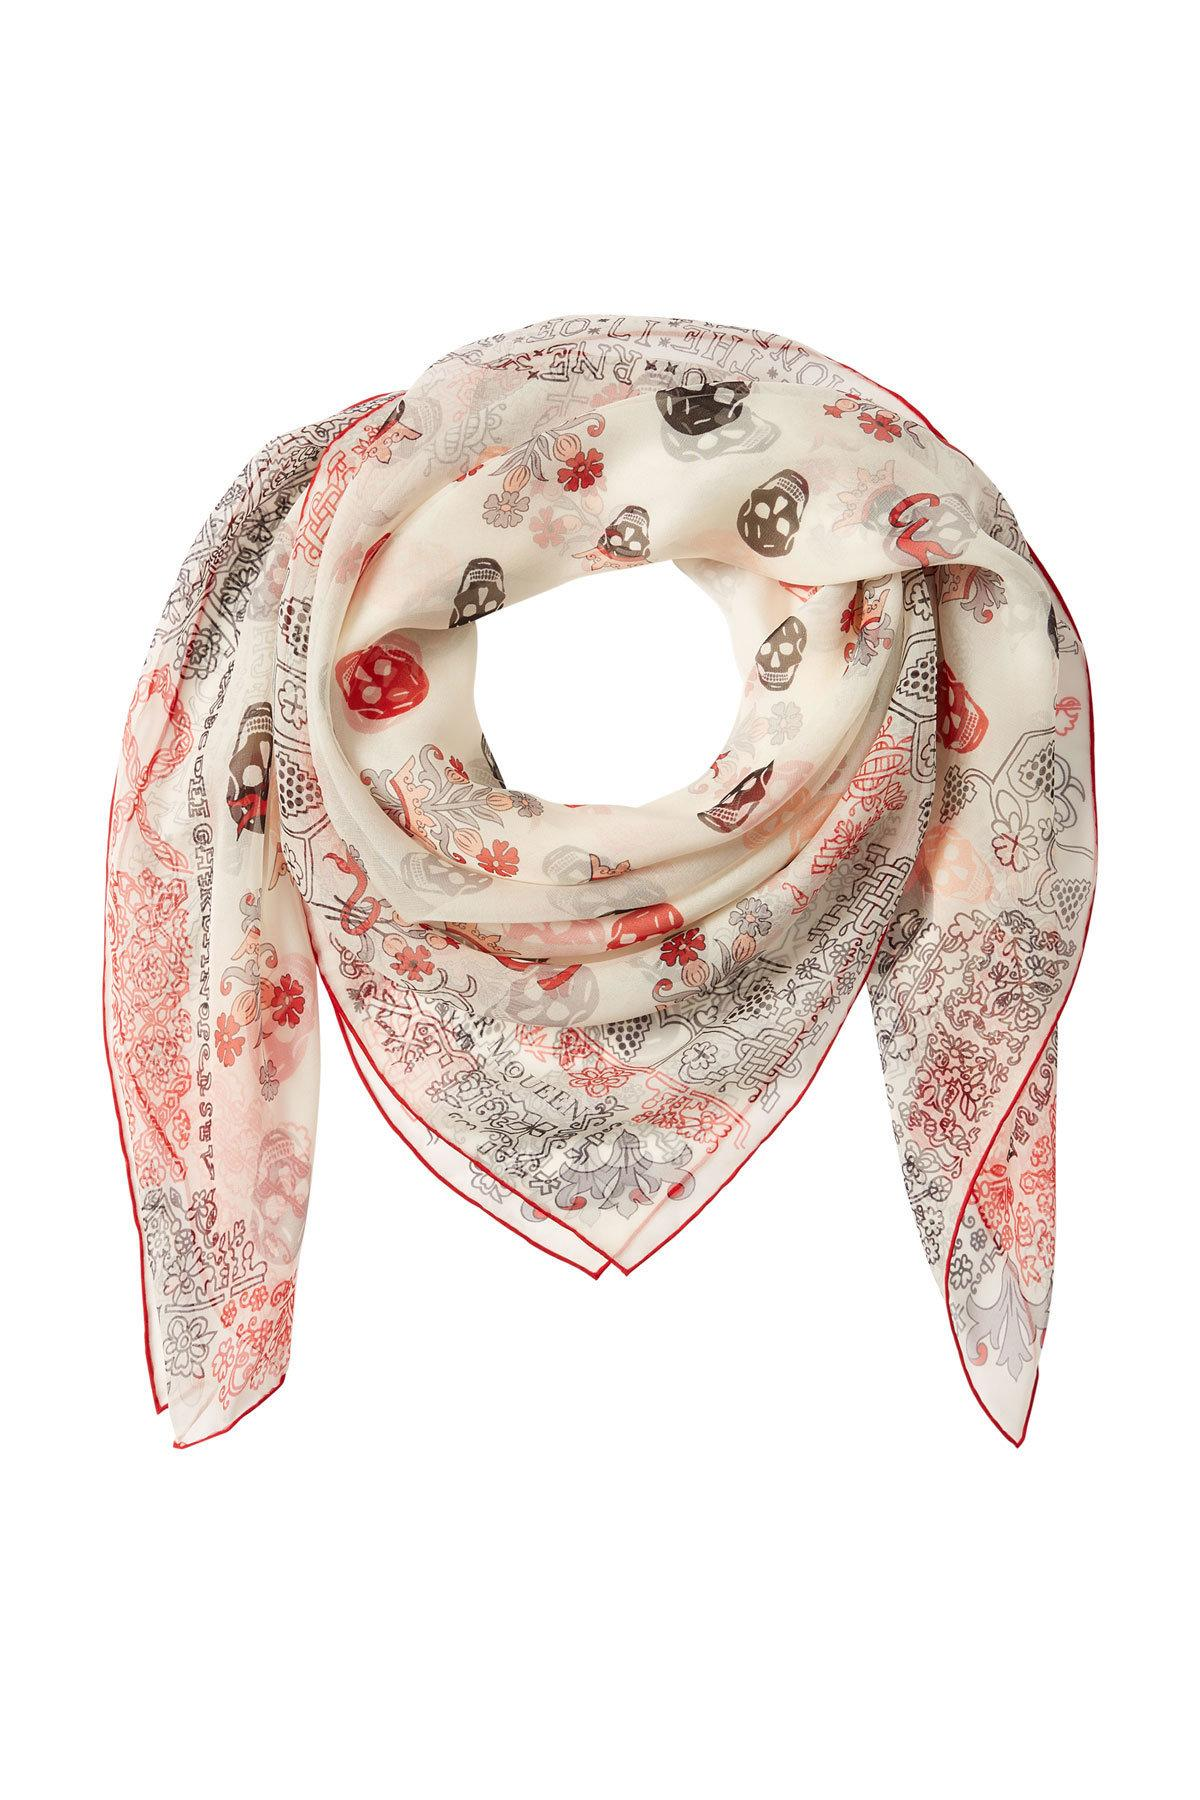 Alexander Mcqueen Printed Silk Chiffon Scarf In Multicolored